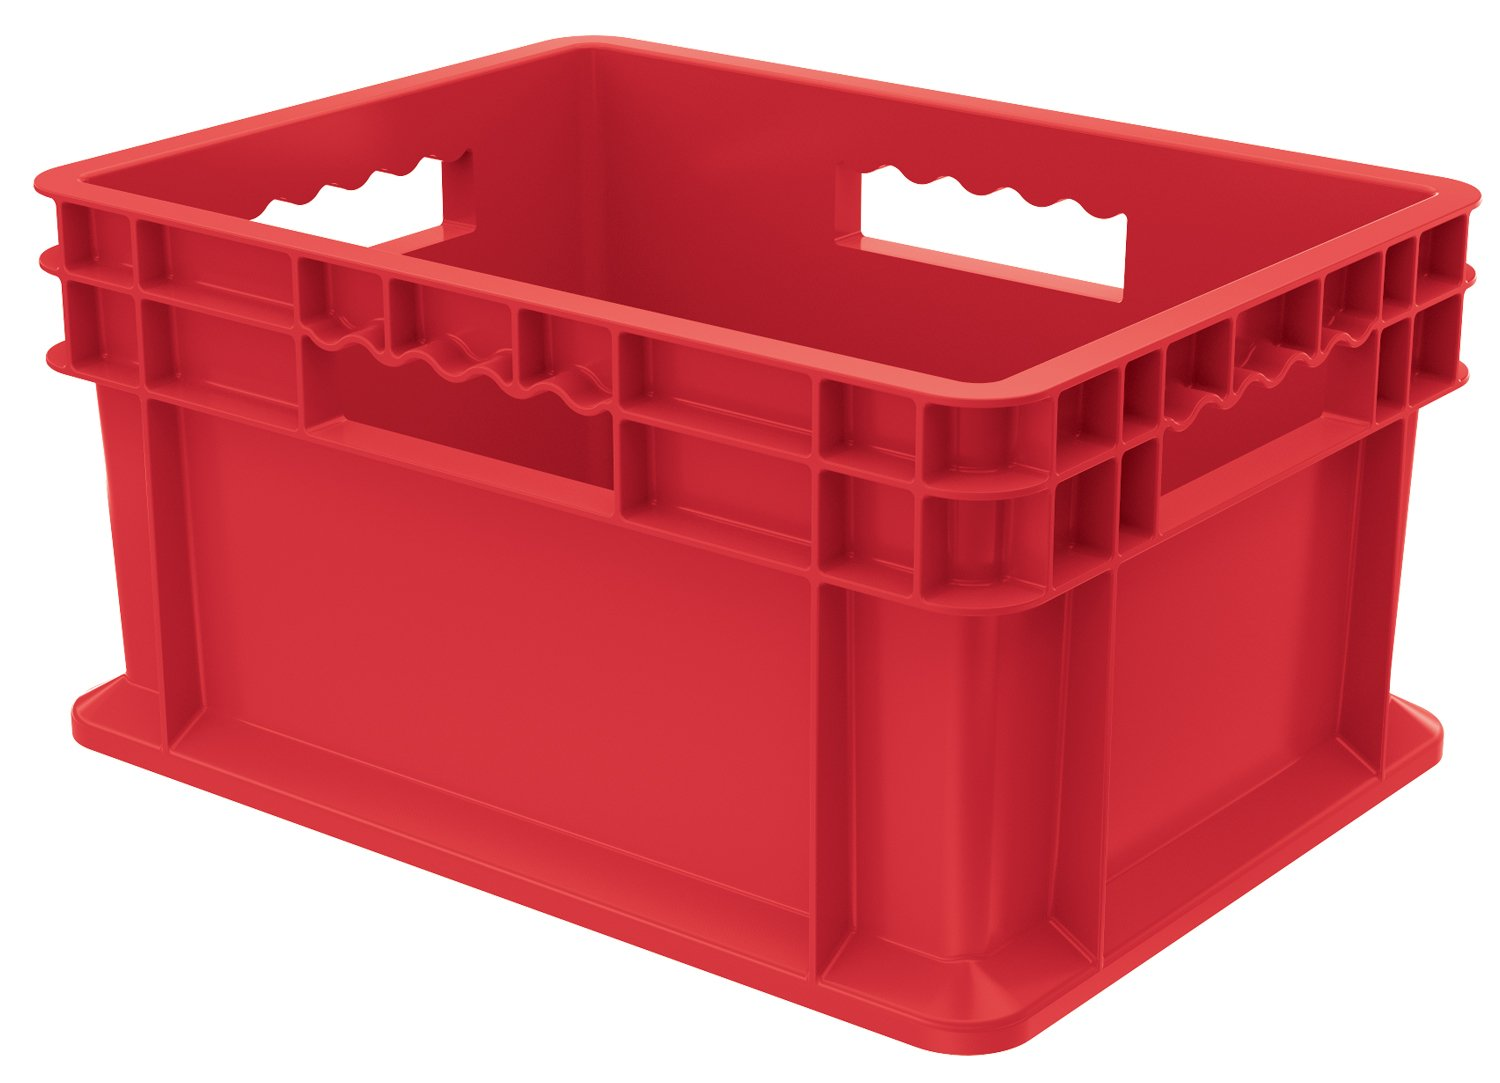 Akro-Mils 37288RED 16-Inch by 12-Inch by 8-Inch Straight Wall Container Plastic Tote with Solid Sides and Solid Base, Case of 12, Red by Akro-Mils